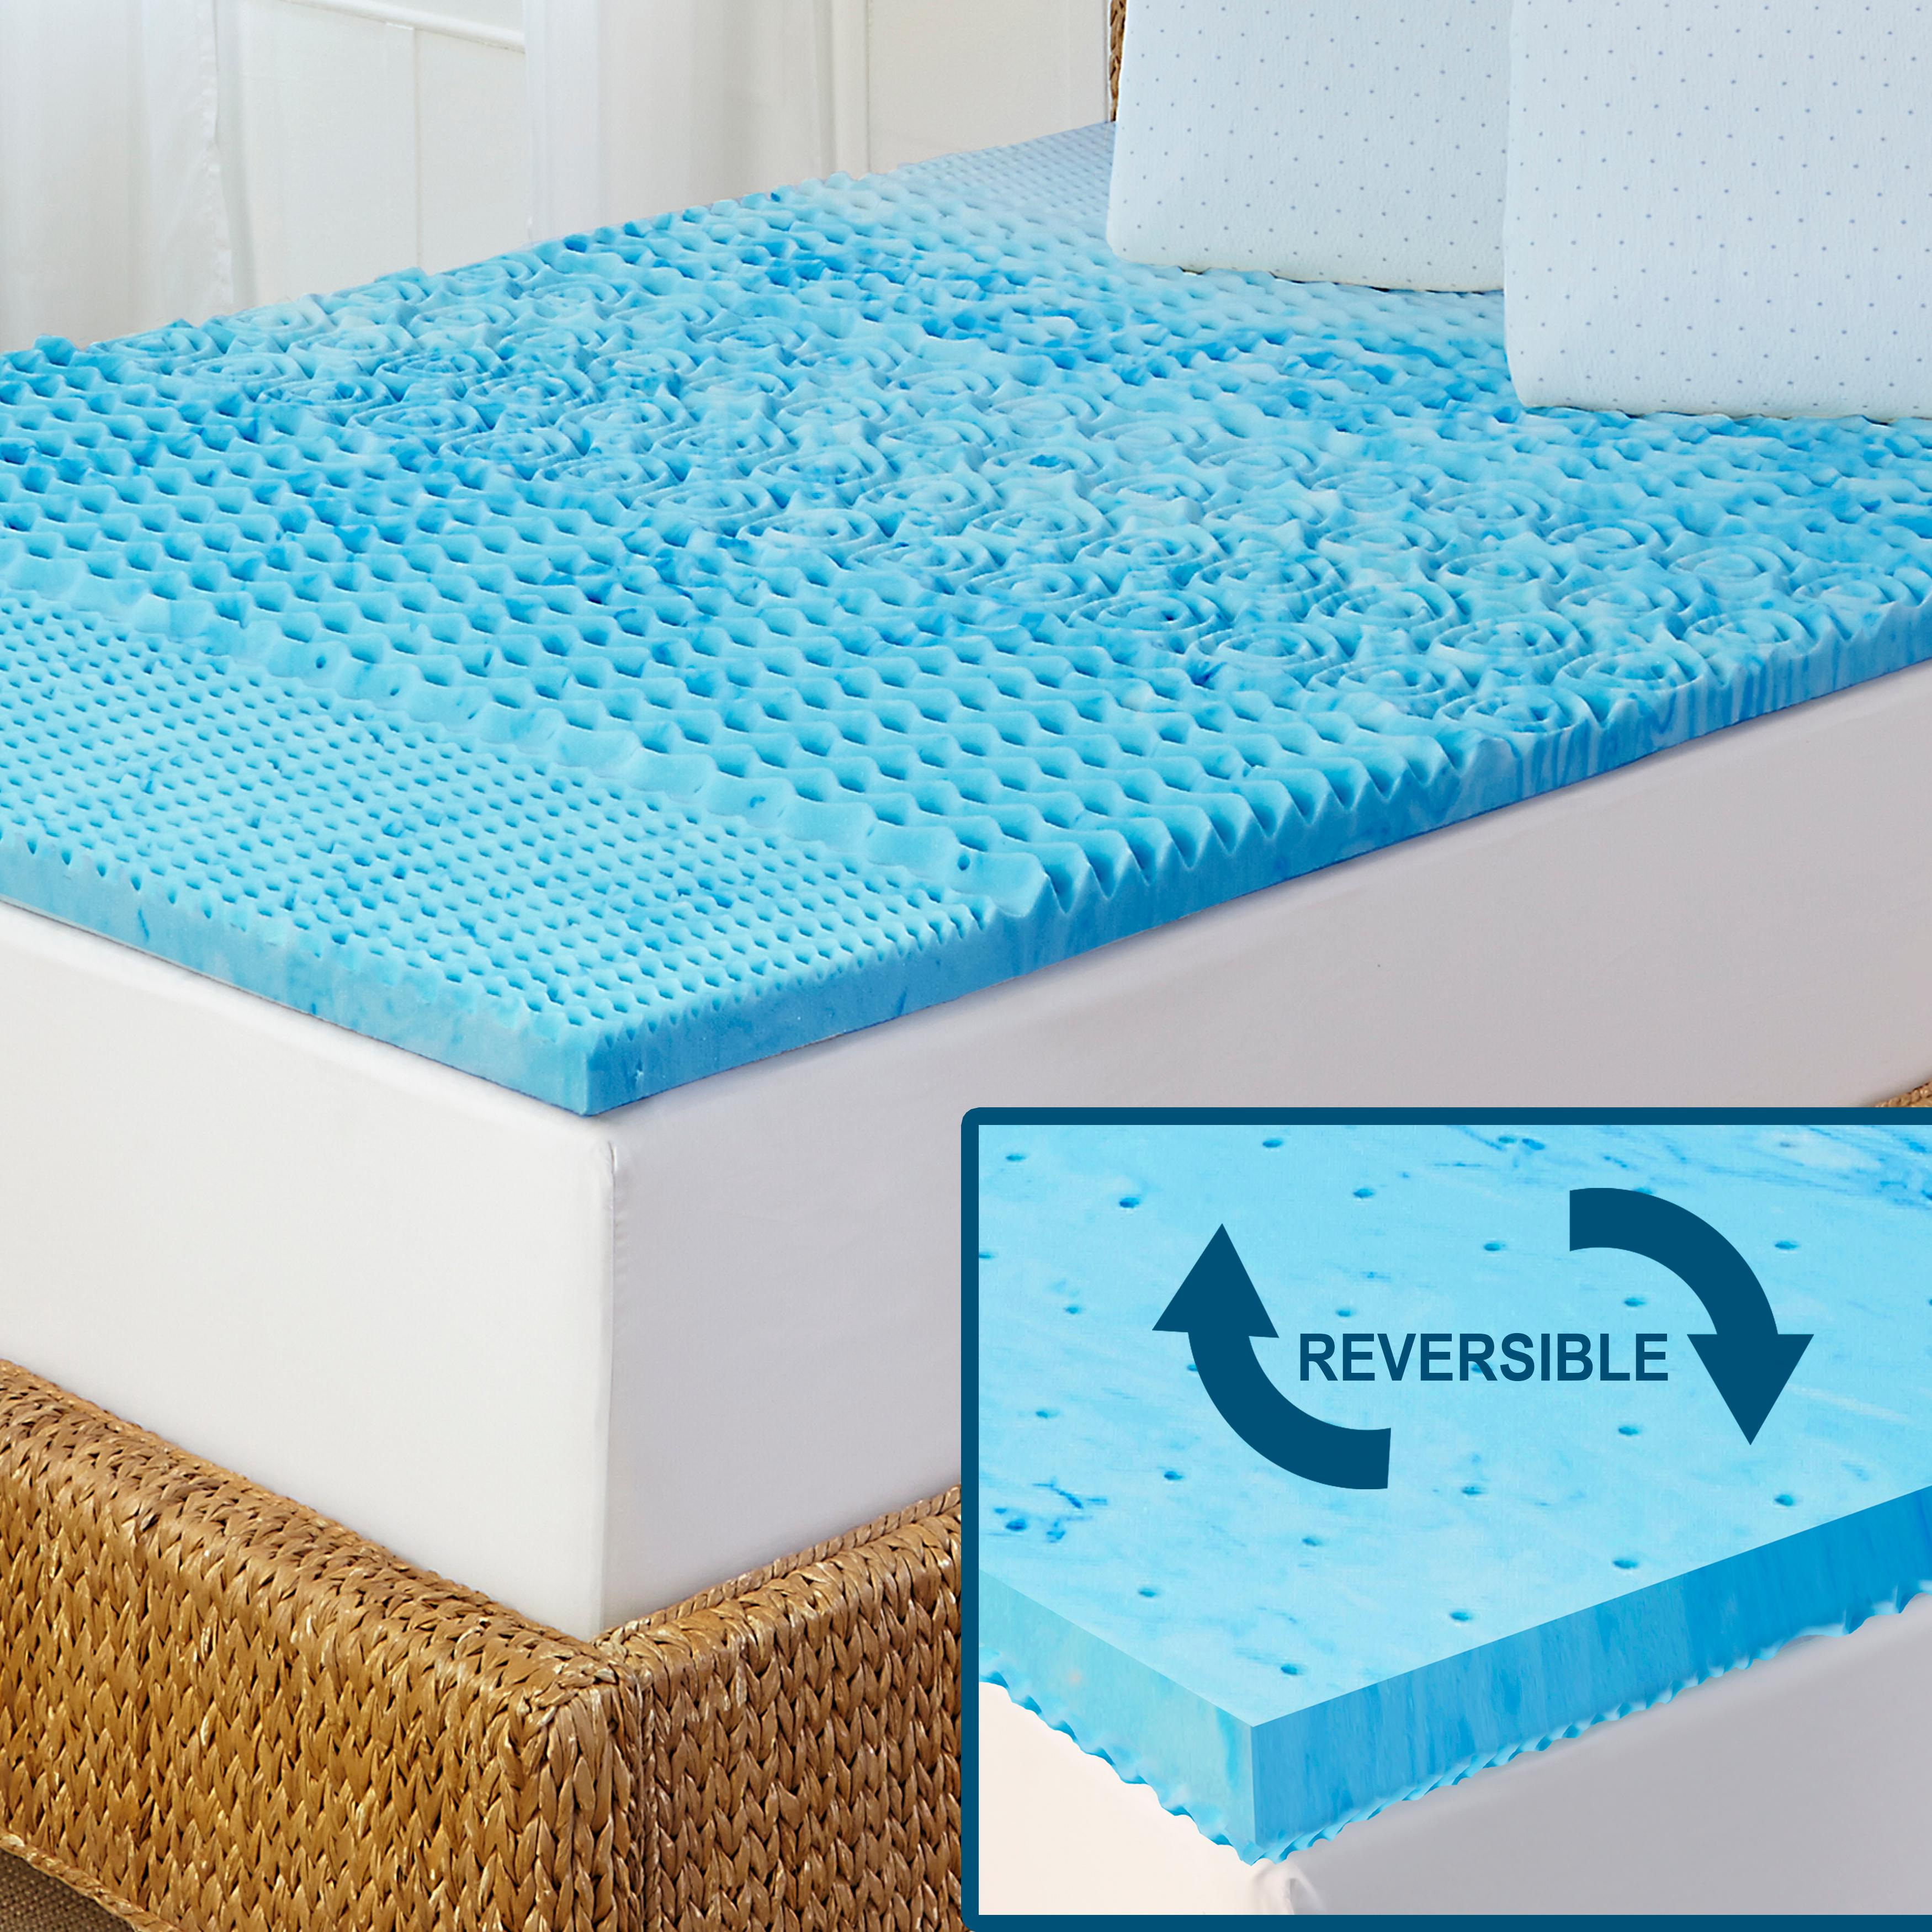 selection bedding category wid foam basics great qlt of pillows therapedic hei mattress mattresses store inch memory topper